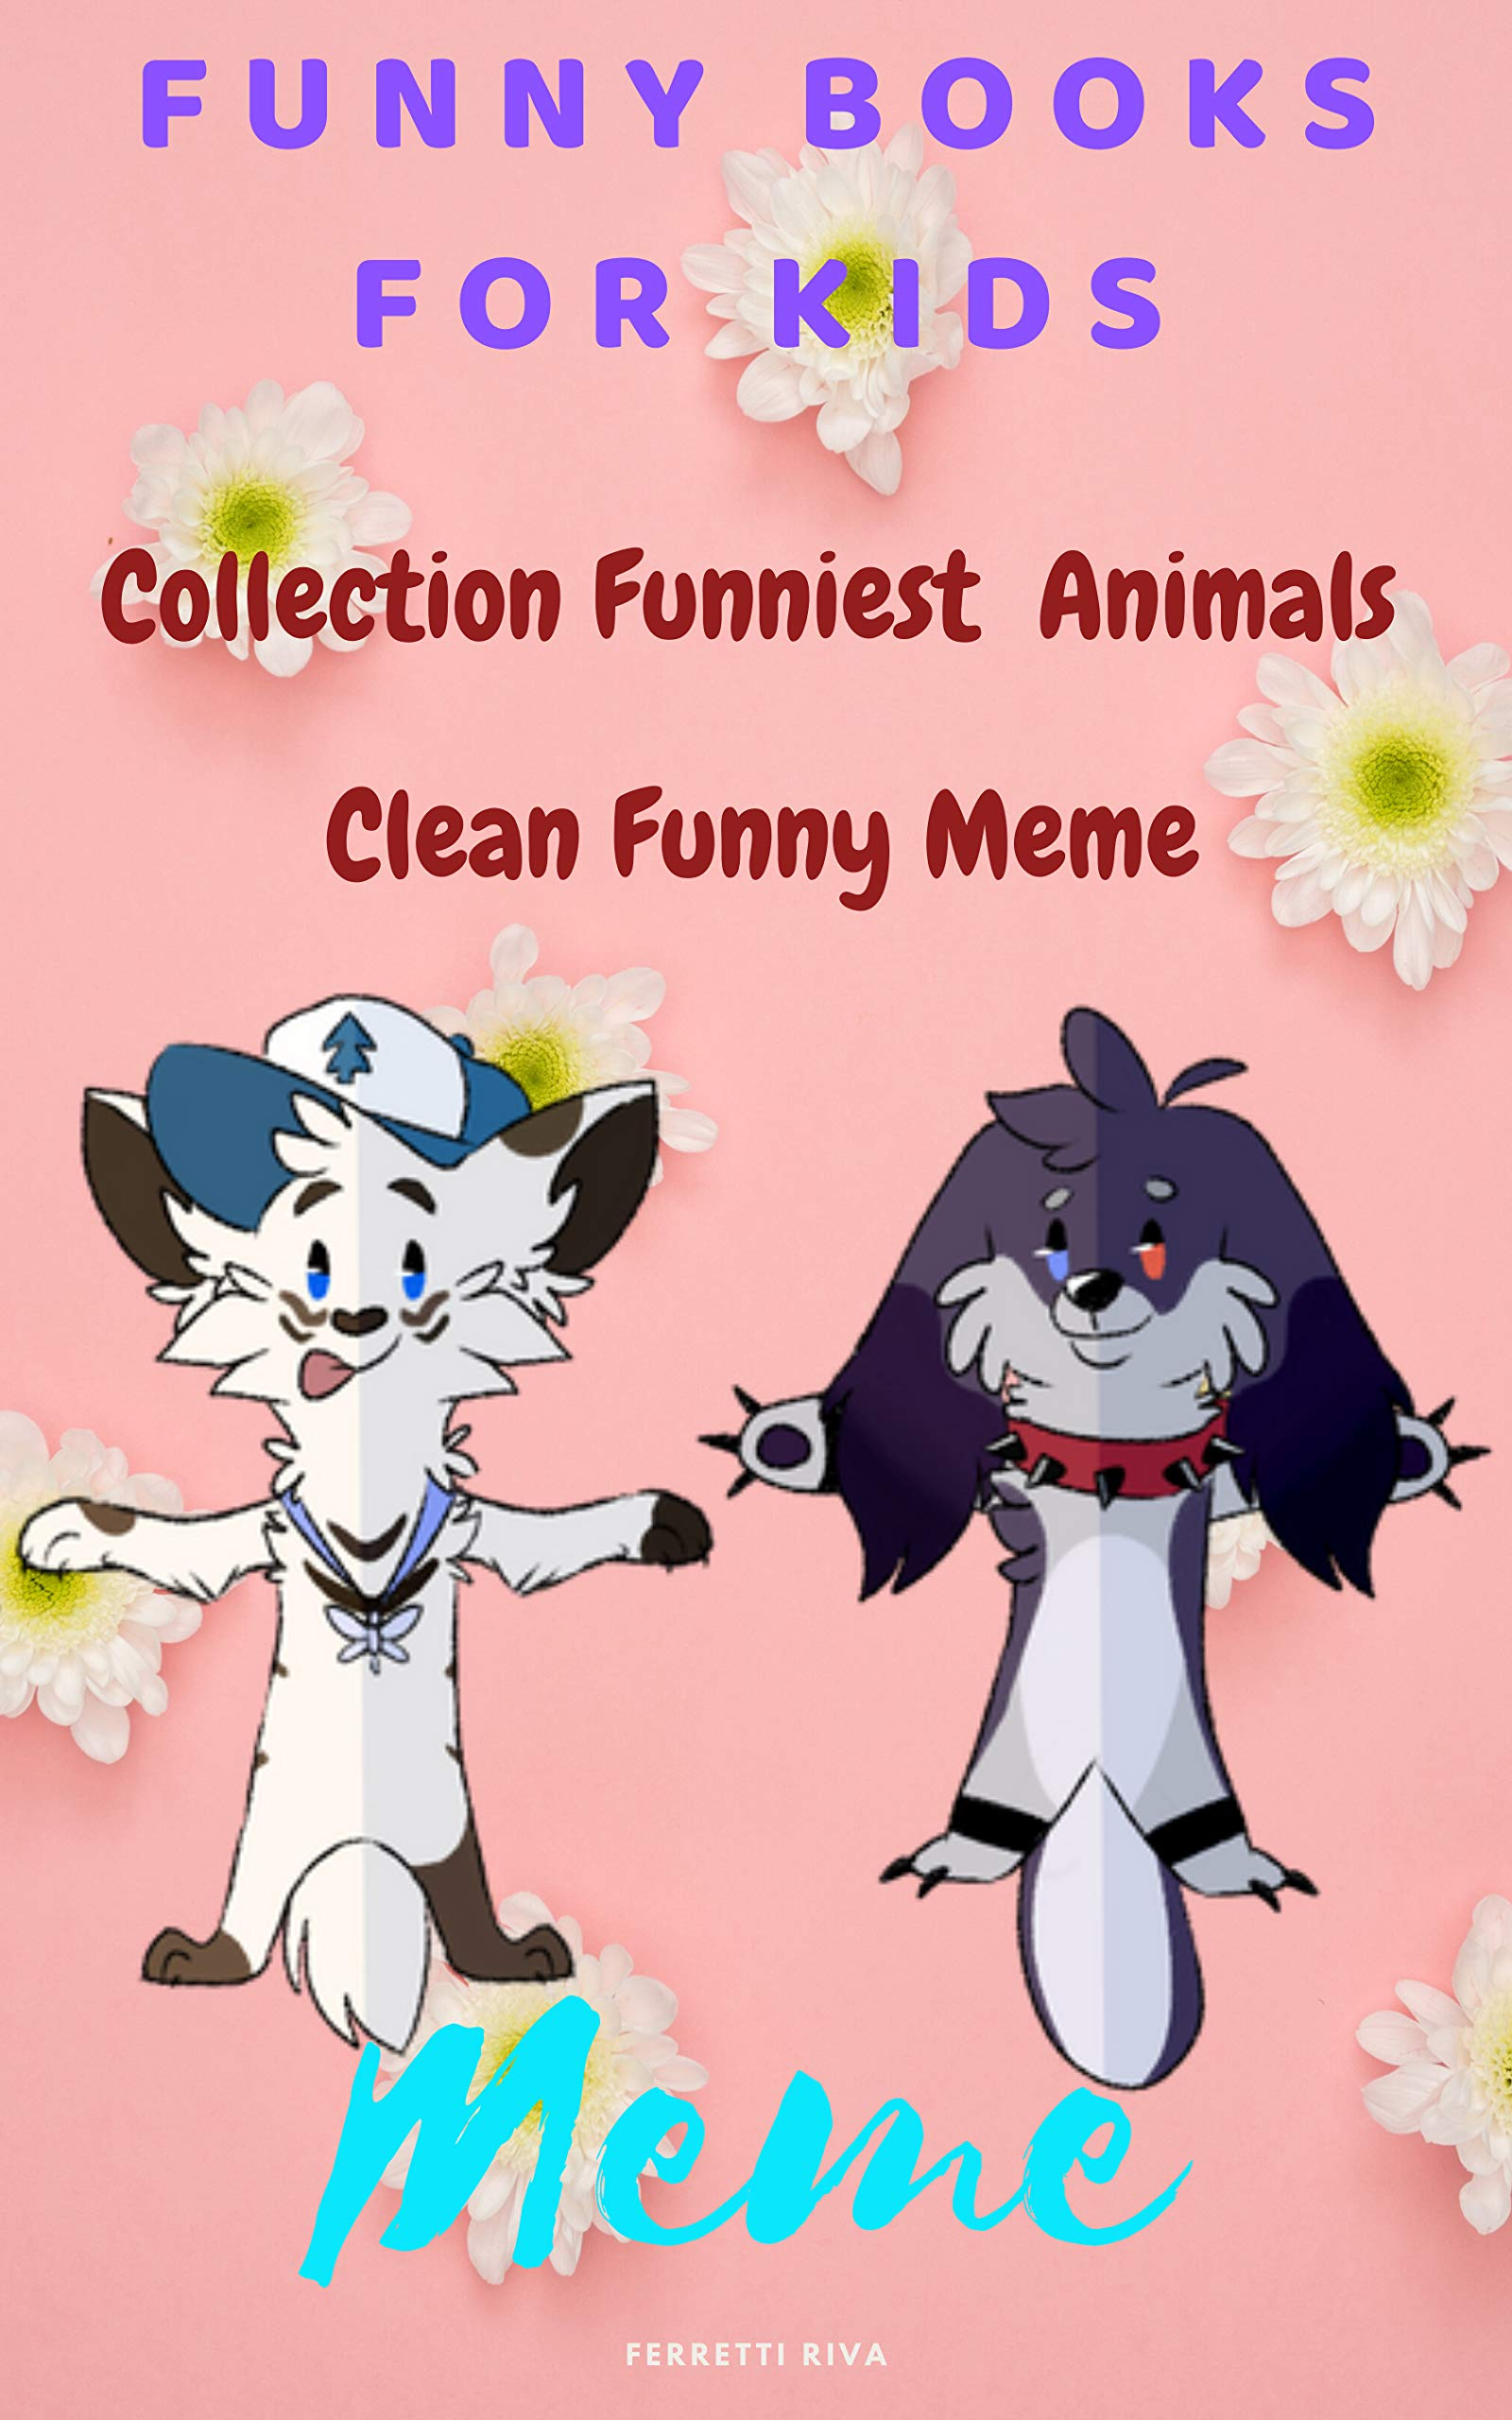 Funny Books For Kids: Collection Funniest Animals For kids , Clean Funny Meme .